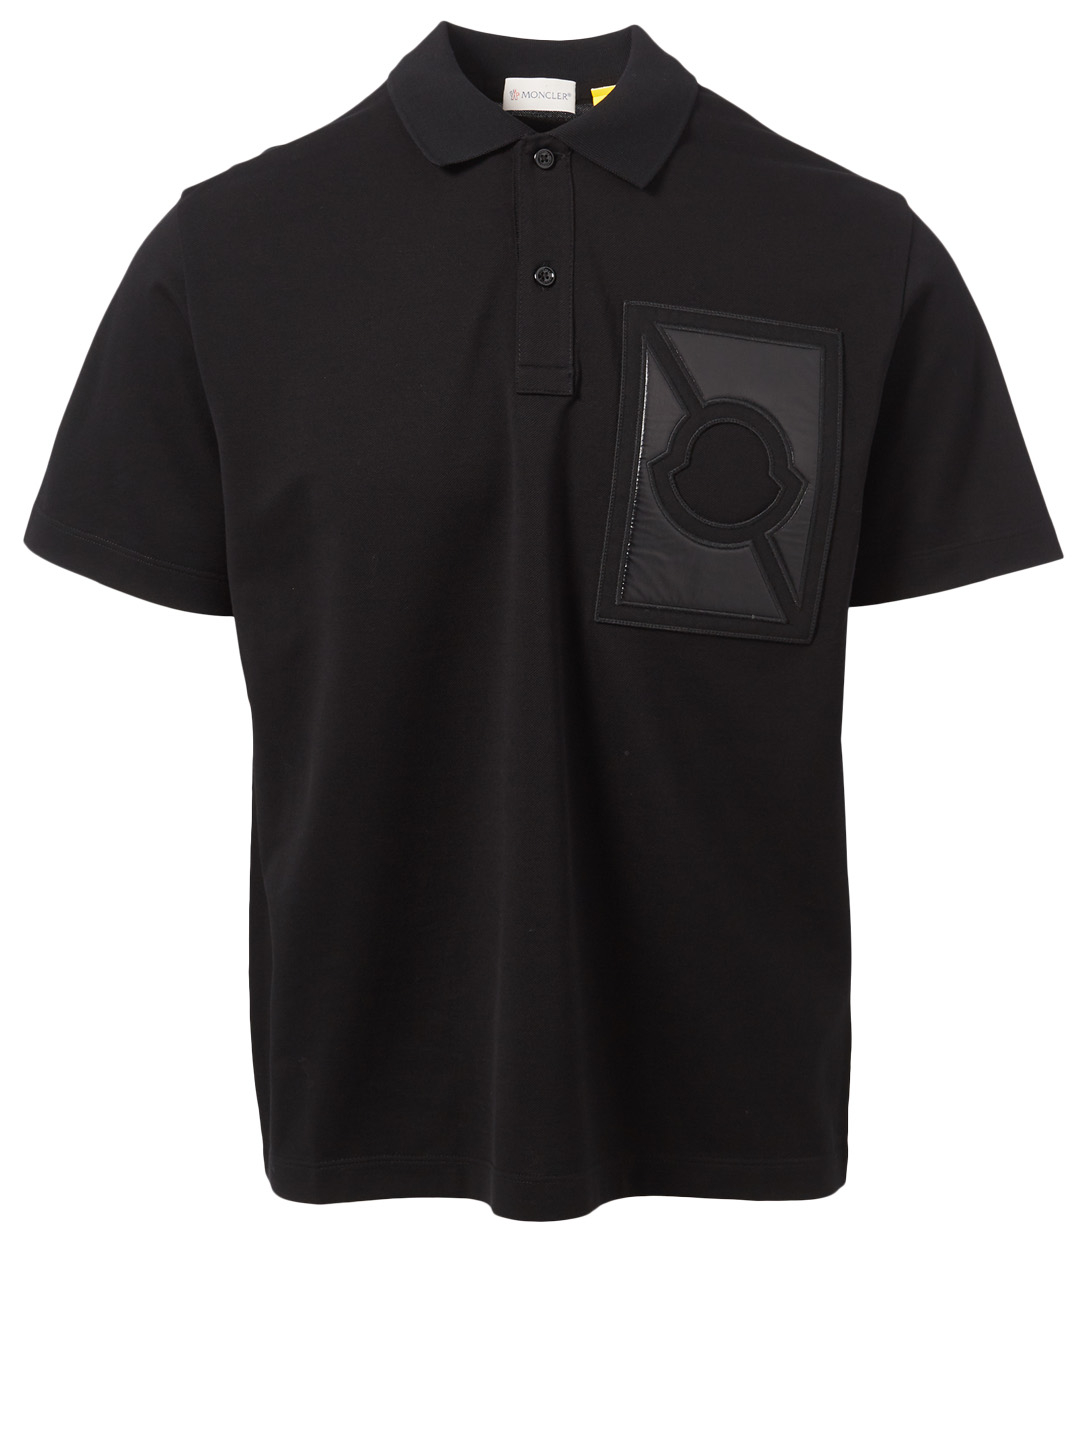 MONCLER GENIUS 5 Moncler x Craig Green Logo Polo T-Shirt Men's Black